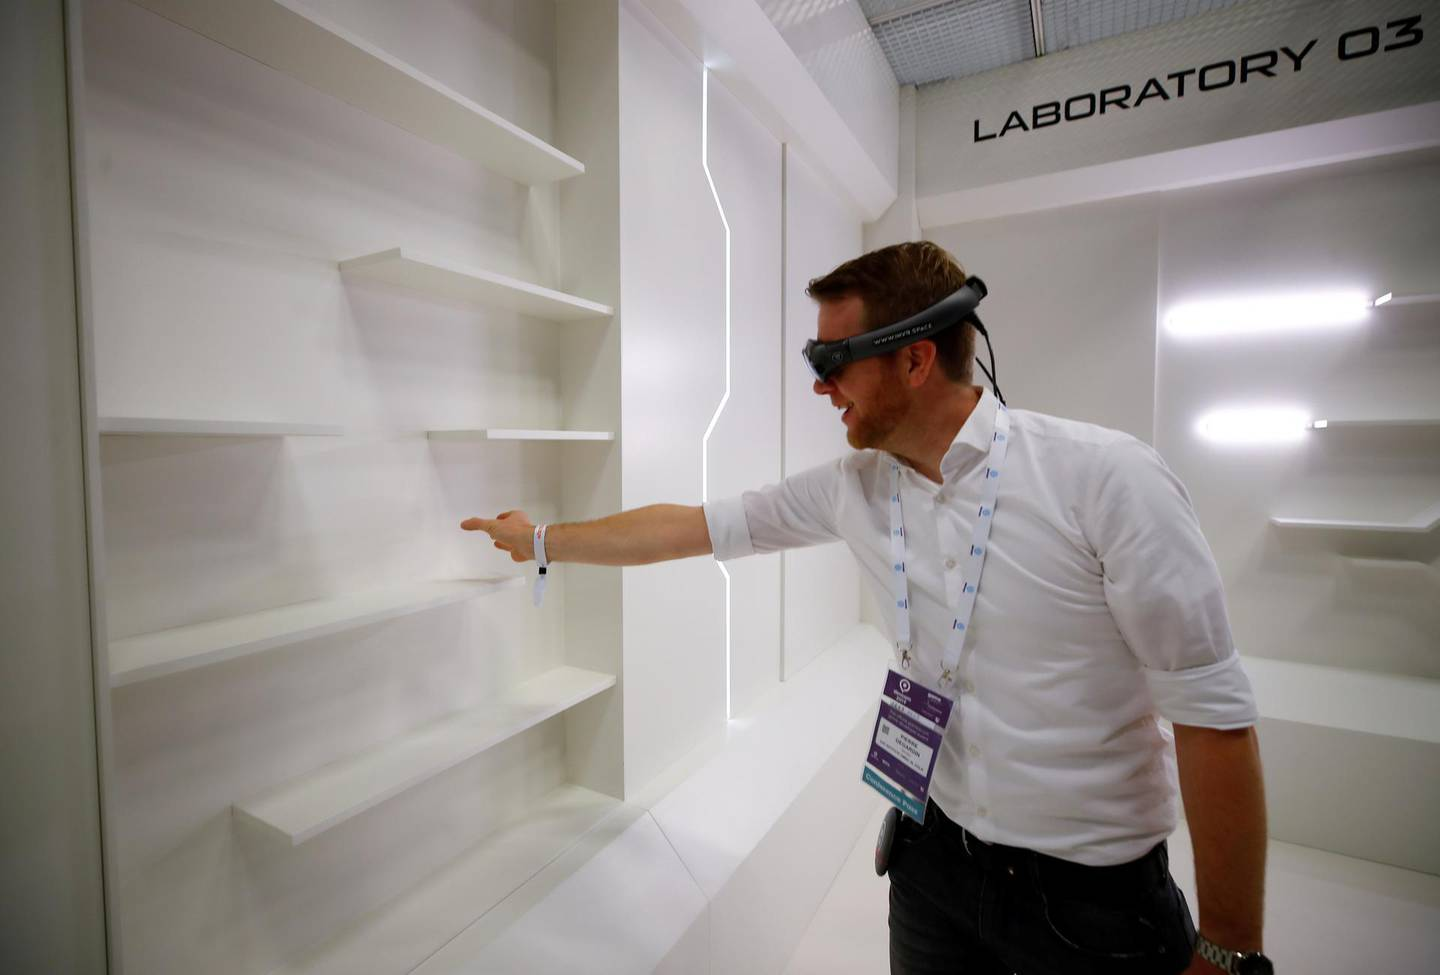 FILE PHOTO: A gamer grabs for a virtual book from an empty shelf as he wears augmented reality goggles during the media day of Europe's leading digital games fair Gamescom, which showcases the latest trends of the computer gaming scene, in Cologne, Germany, August 20, 2019. REUTERS/Wolfgang Rattay/File Photo